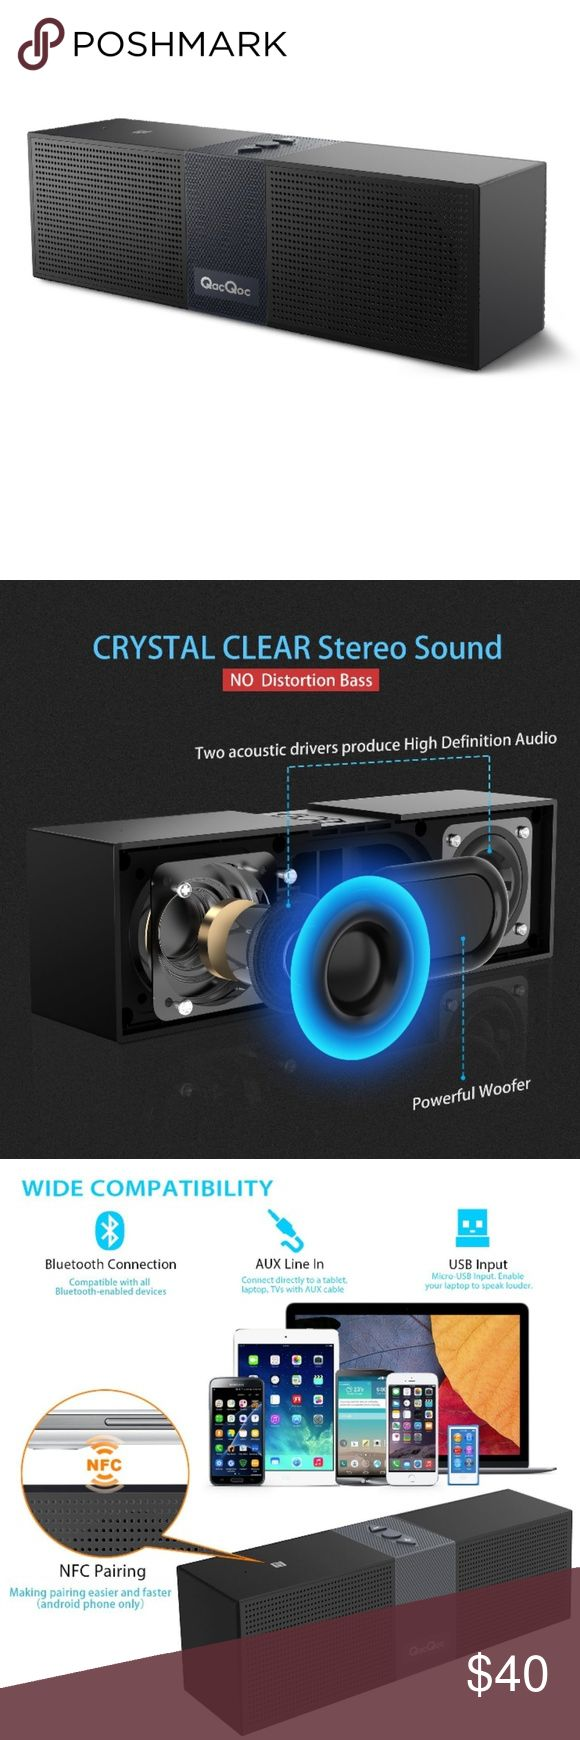 ??QacQoc Bluetooth Speakers Portable -CRYSTAL CLEAR STEREO SOUND - Two acoustic drivers produce a wide audio spectrum, with 3D surround effect. Newly designed passive radiator provides strong bass without distortion even at highest volume.  WIDE COMPATIBILITY - Suppports A2DP, compatible with all Bluetooth-enabled devices.AUX-in, connect directly to a tablet, laptop, TVs with AUX cable. NFC Pairing, making pairing easier and faster. Built-in Microphone, talk freely without reaching for your…